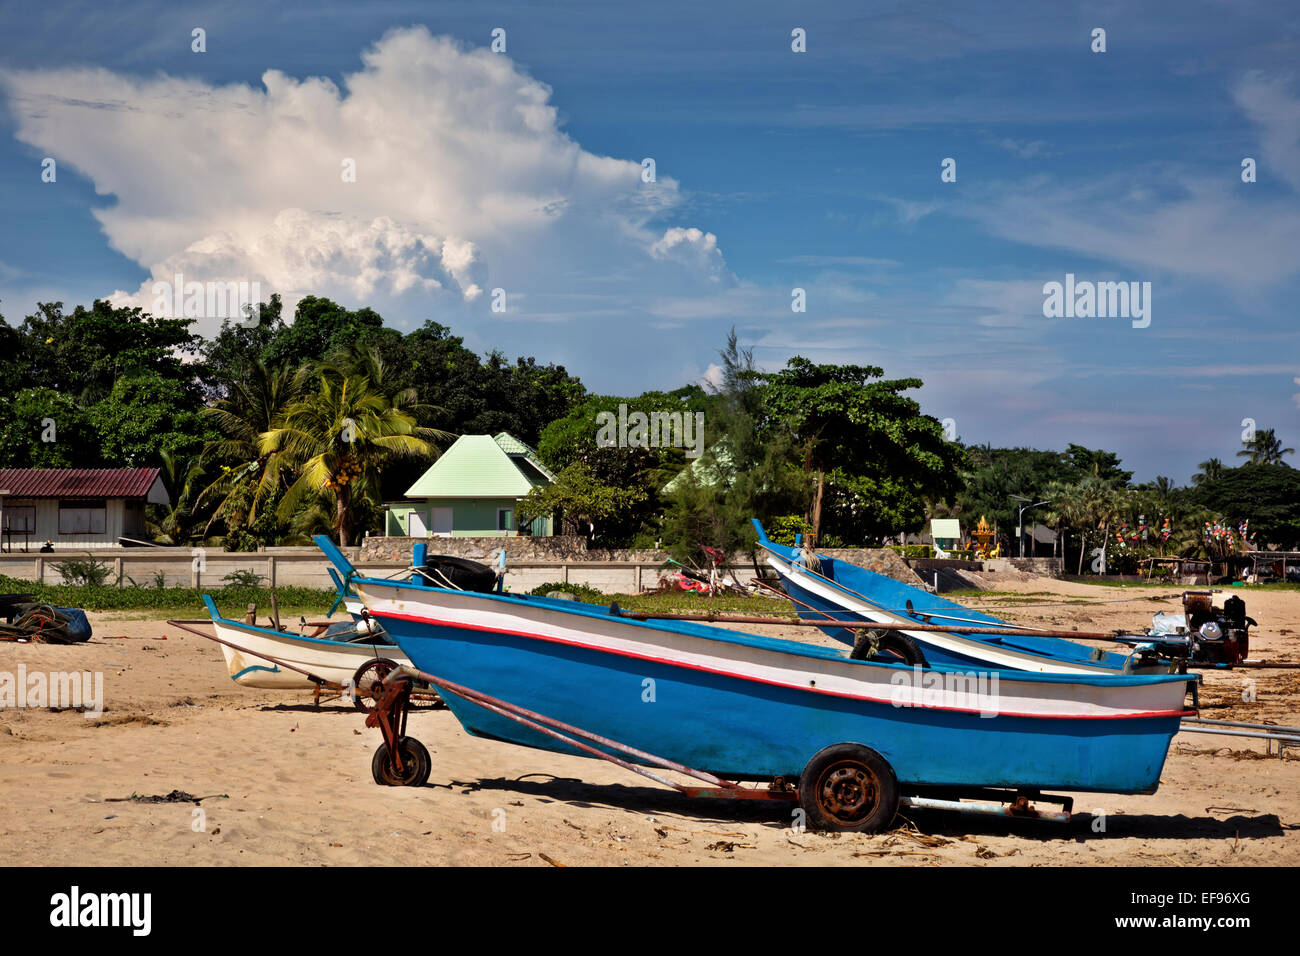 TH00384-00...THAILAND - Storm cloud rising above the beach at Hat Chao Samran. - Stock Image